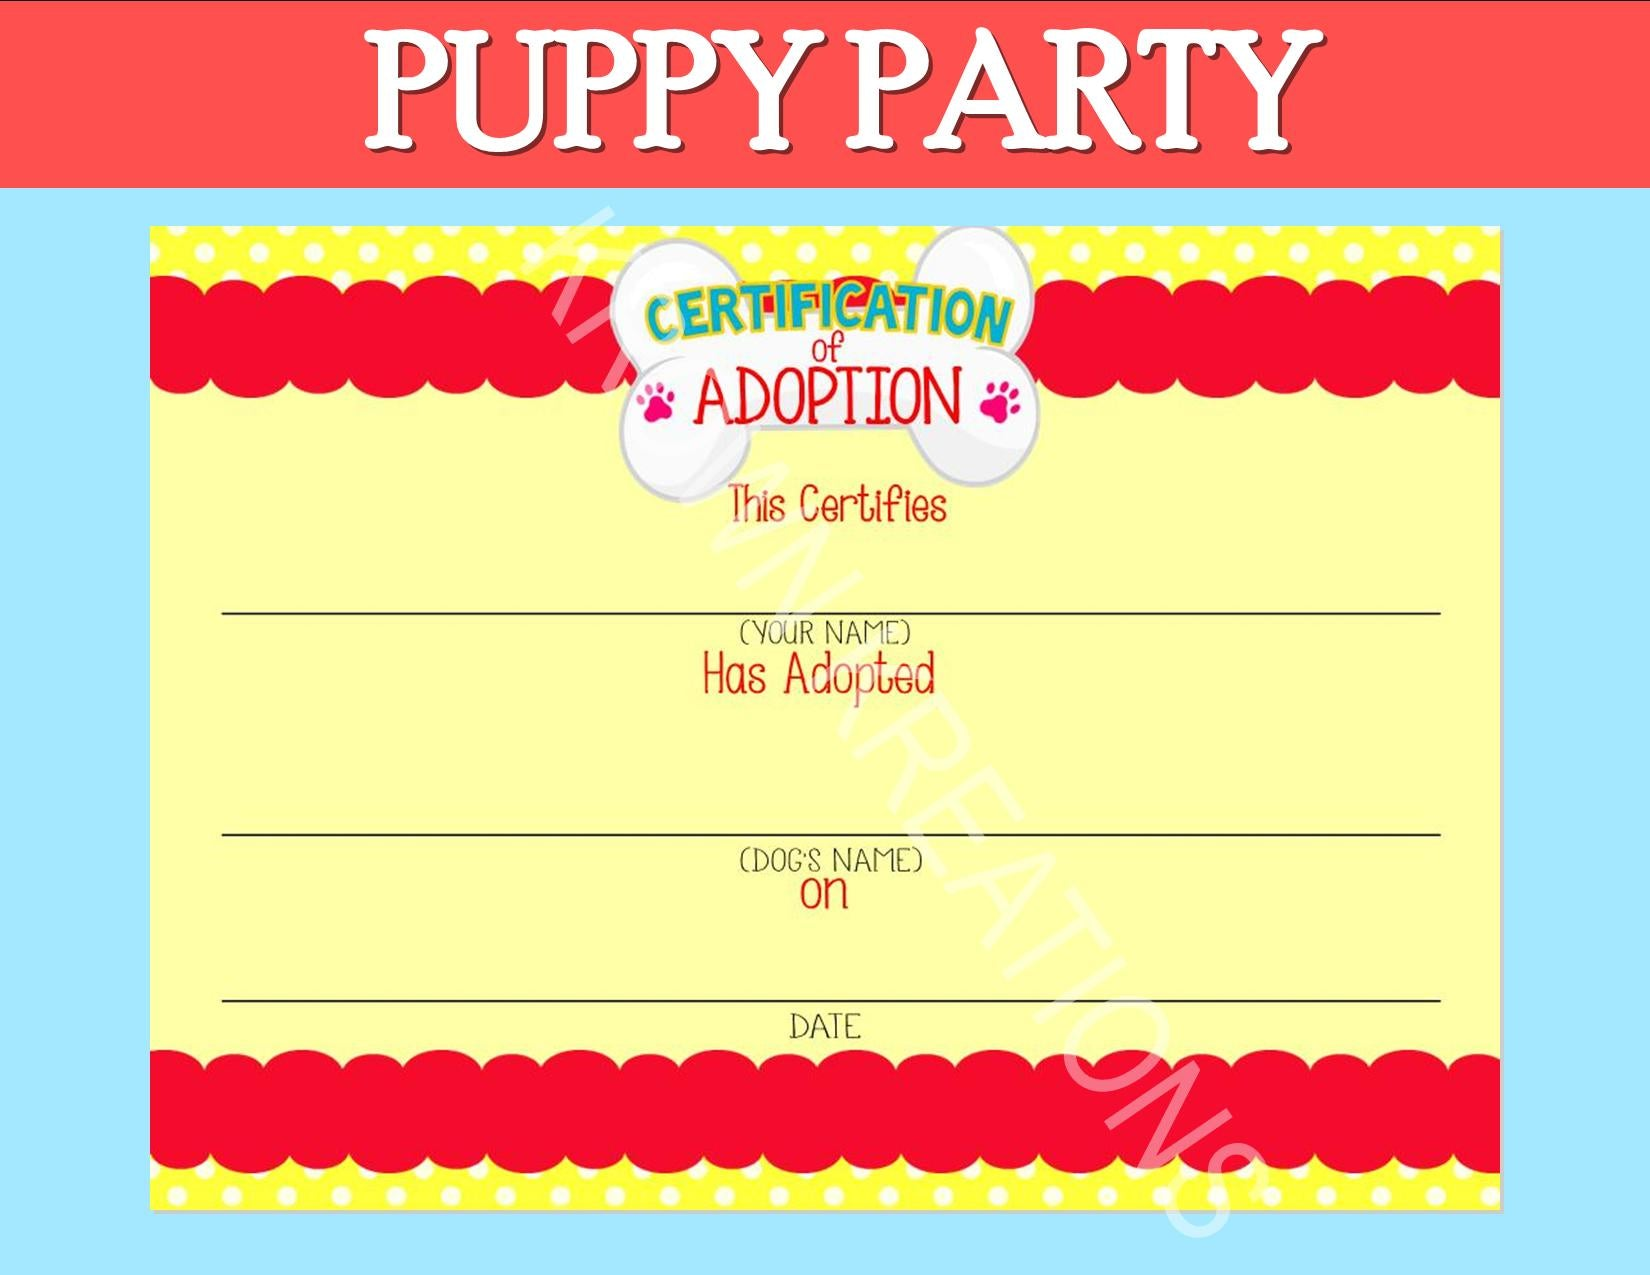 Puppy Party Dog Adoption Party Puppy Birthday Dog Certificate